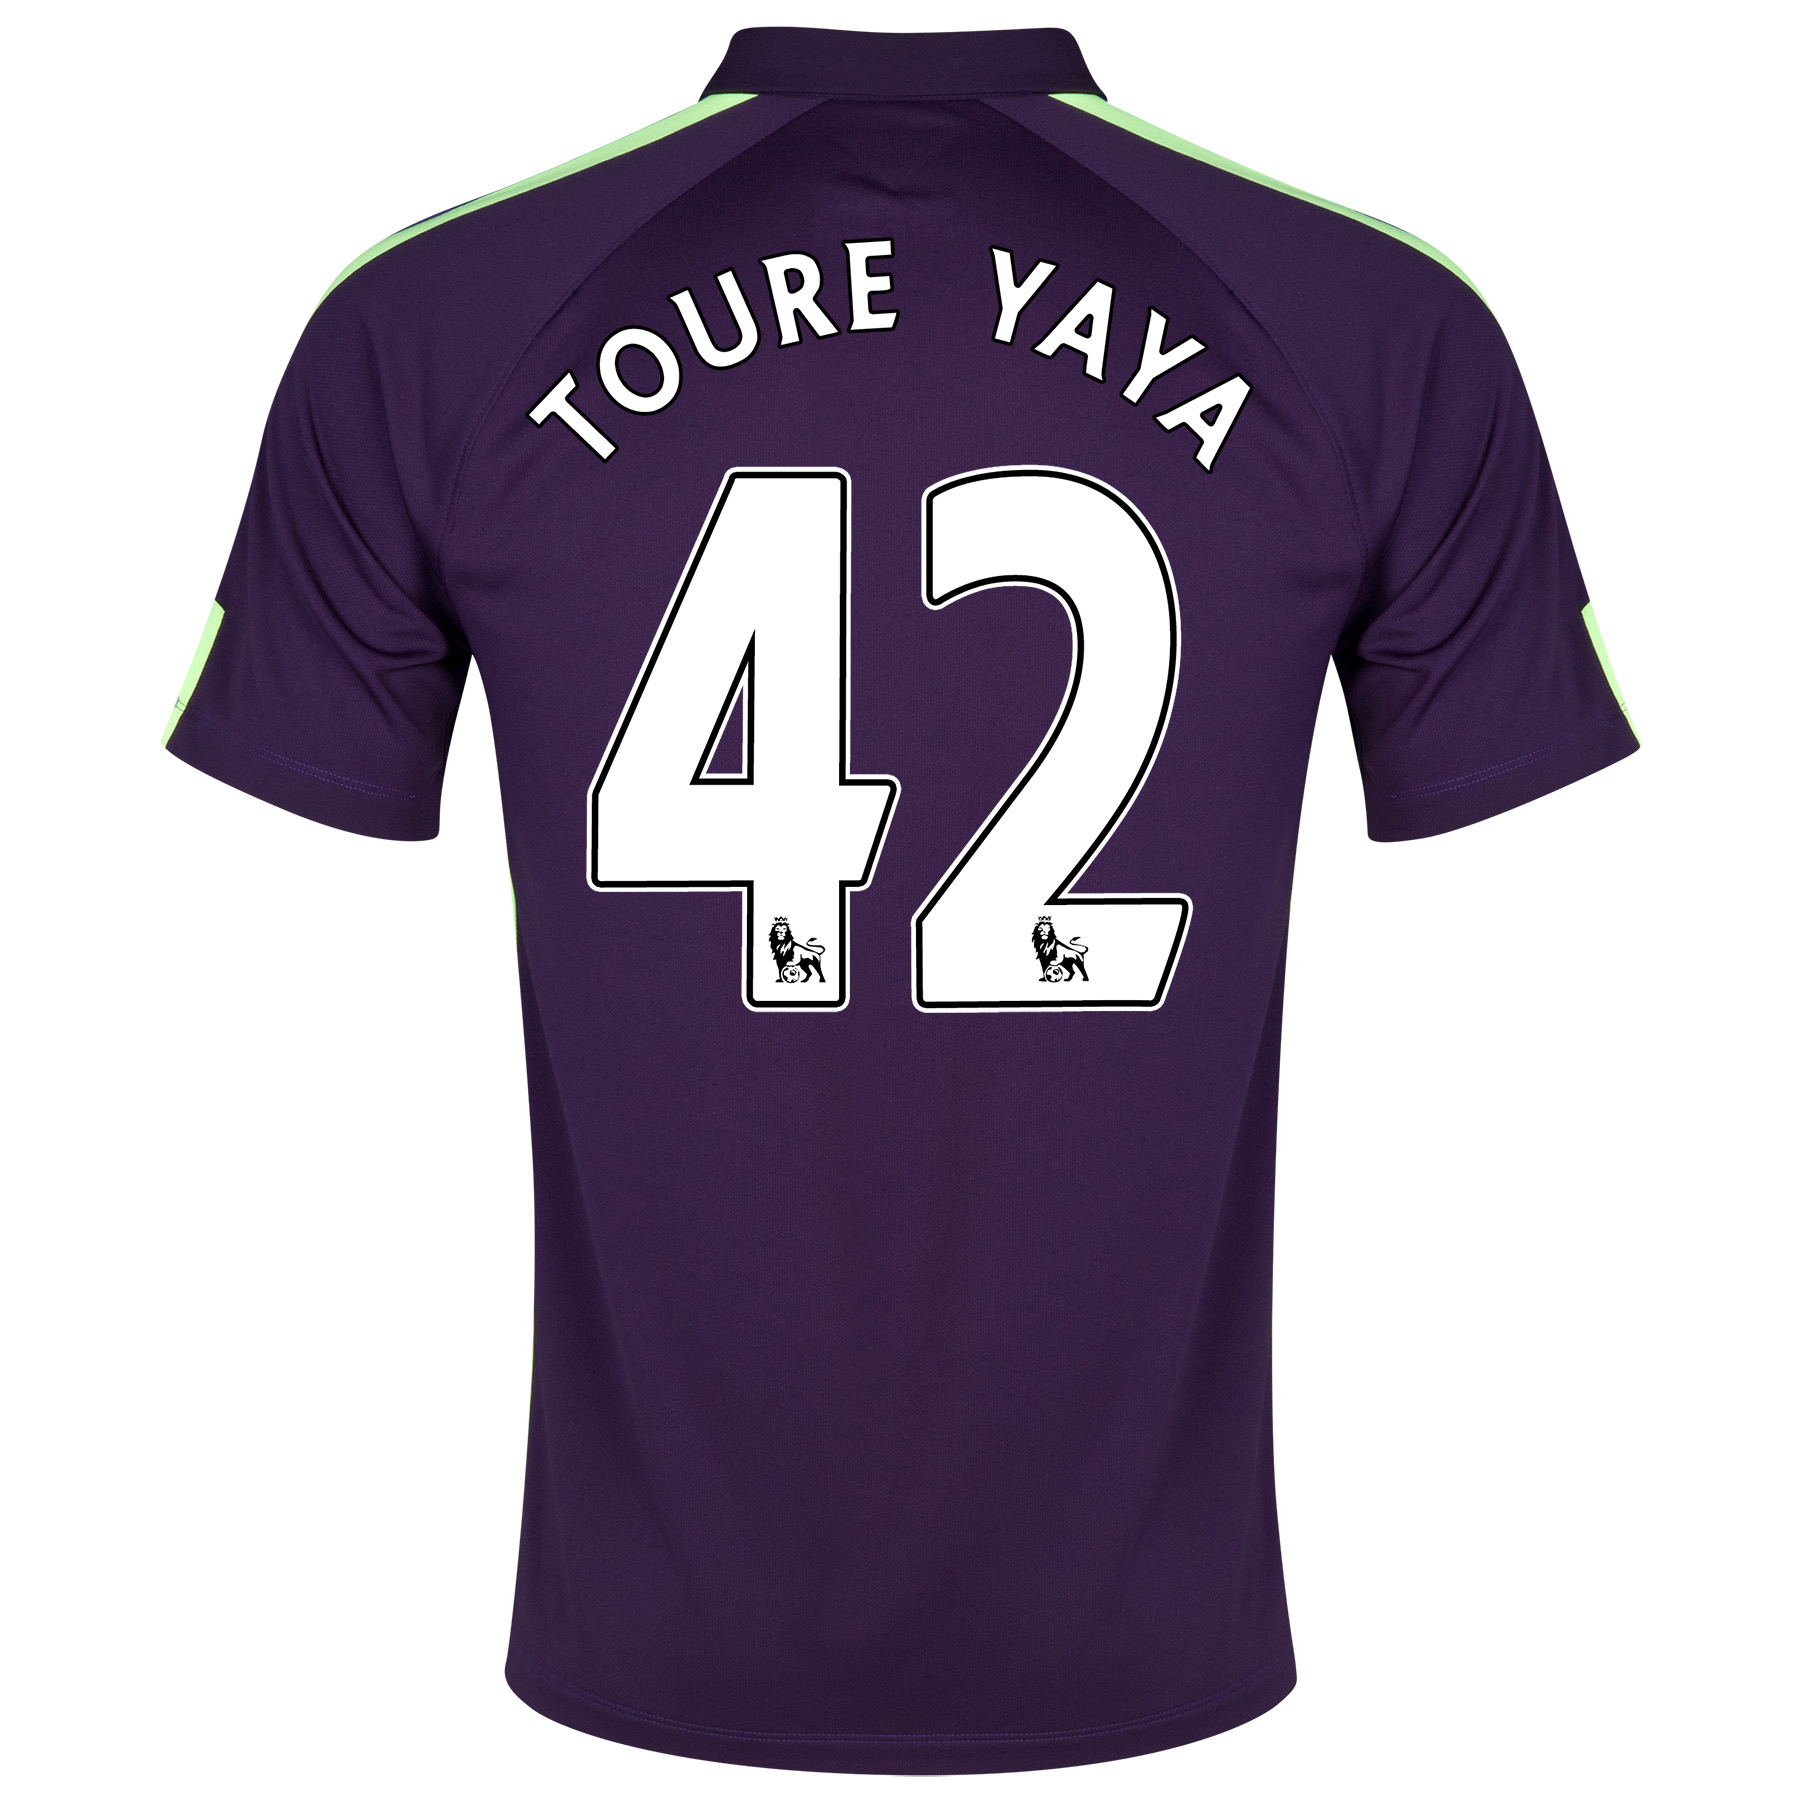 Manchester City Cup Away Shirt 2014/15 Purple with Toure Yaya 42 printing